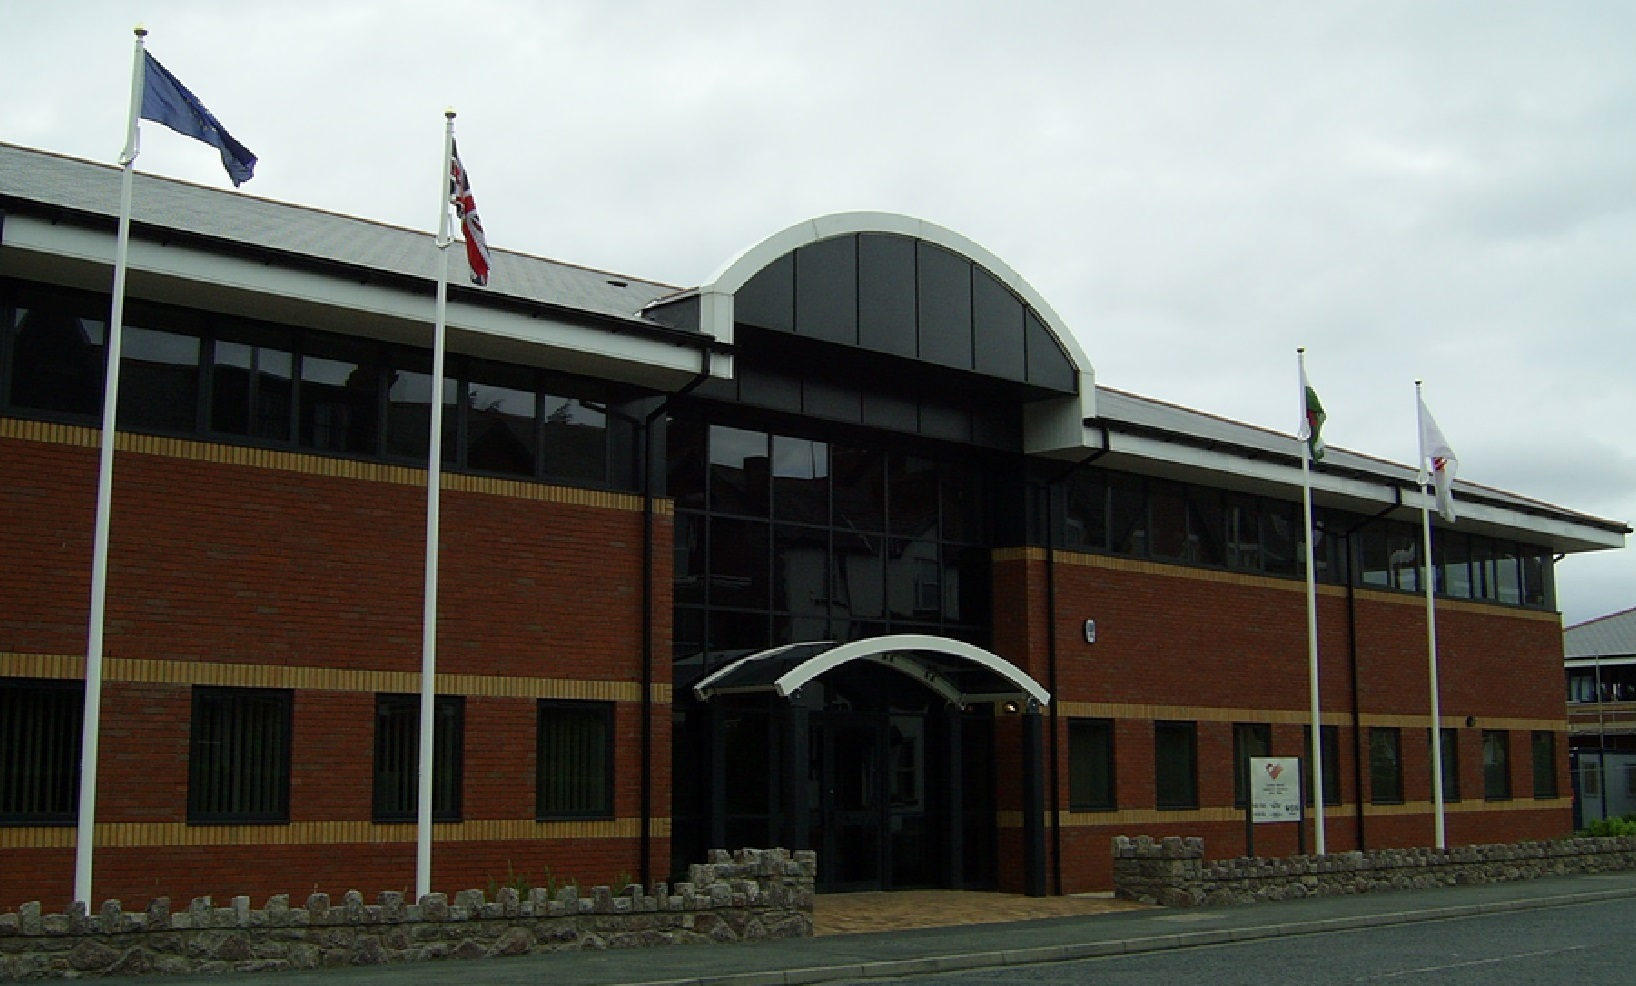 Photograph of The Assembly's North Wales Information Centre